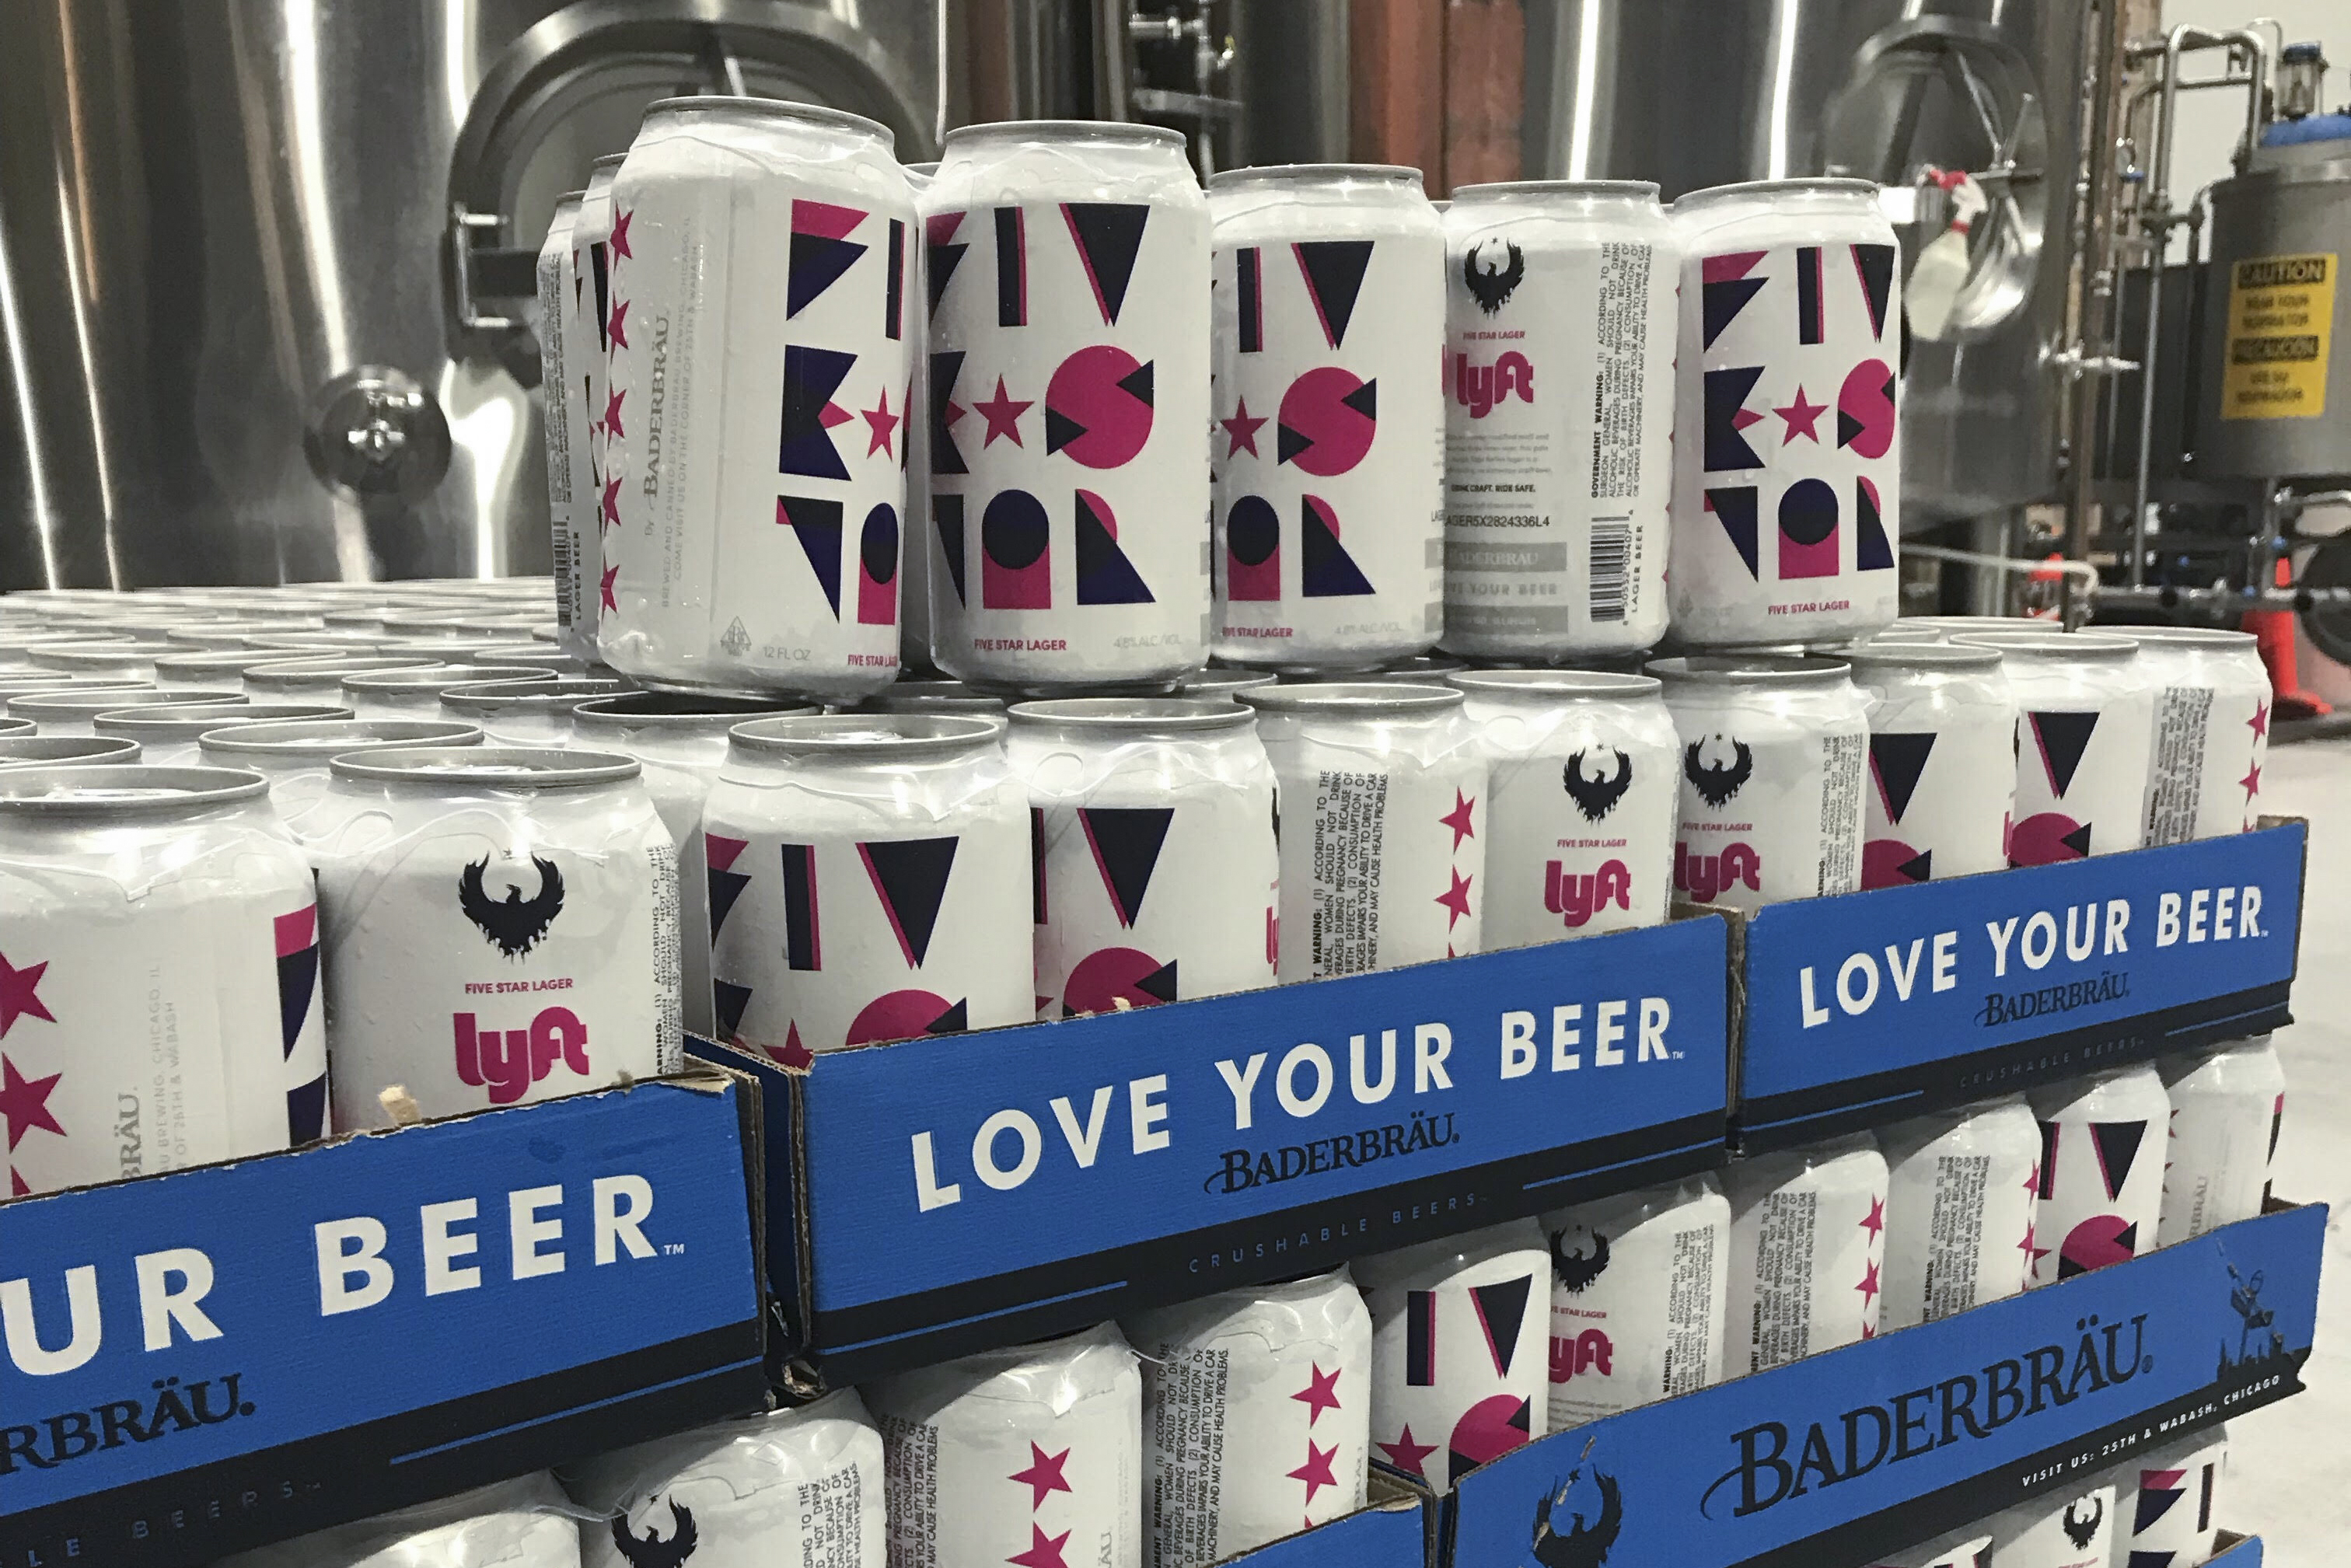 Lyft Partners With Brewery on Beer That Comes With Discount Rides